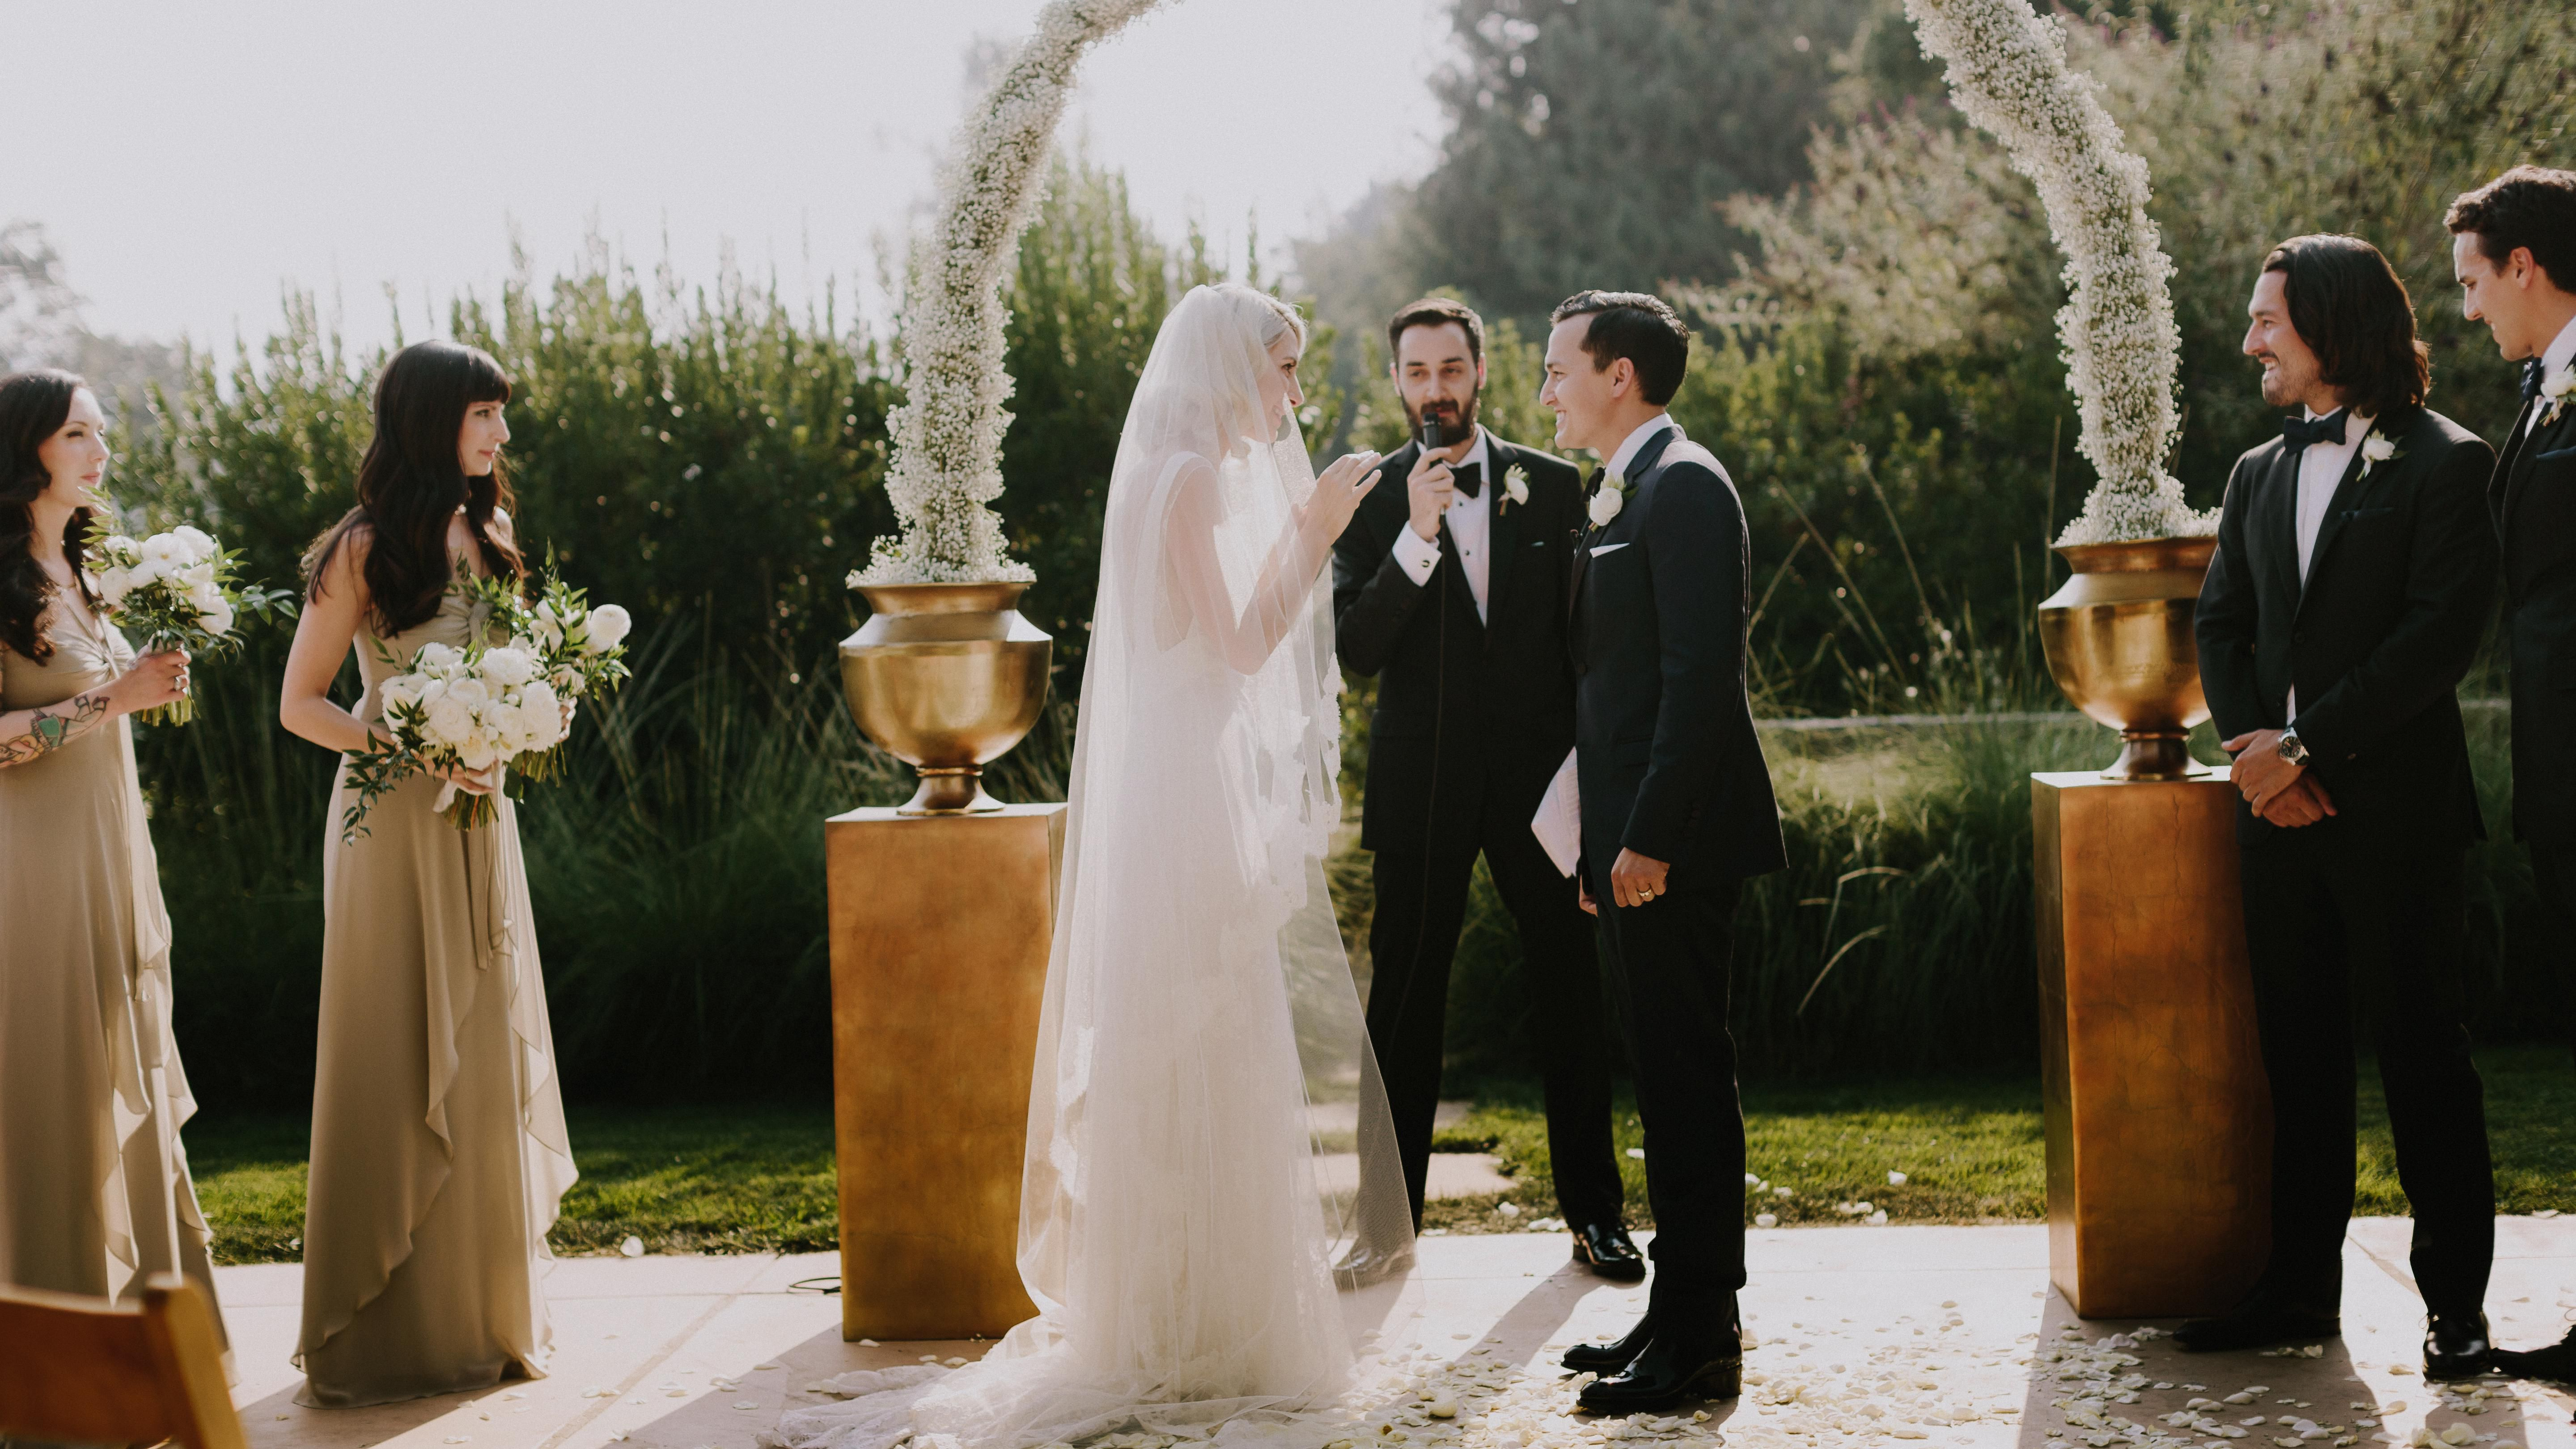 Friends Officiating Weddings 101 Everything You Need To Know